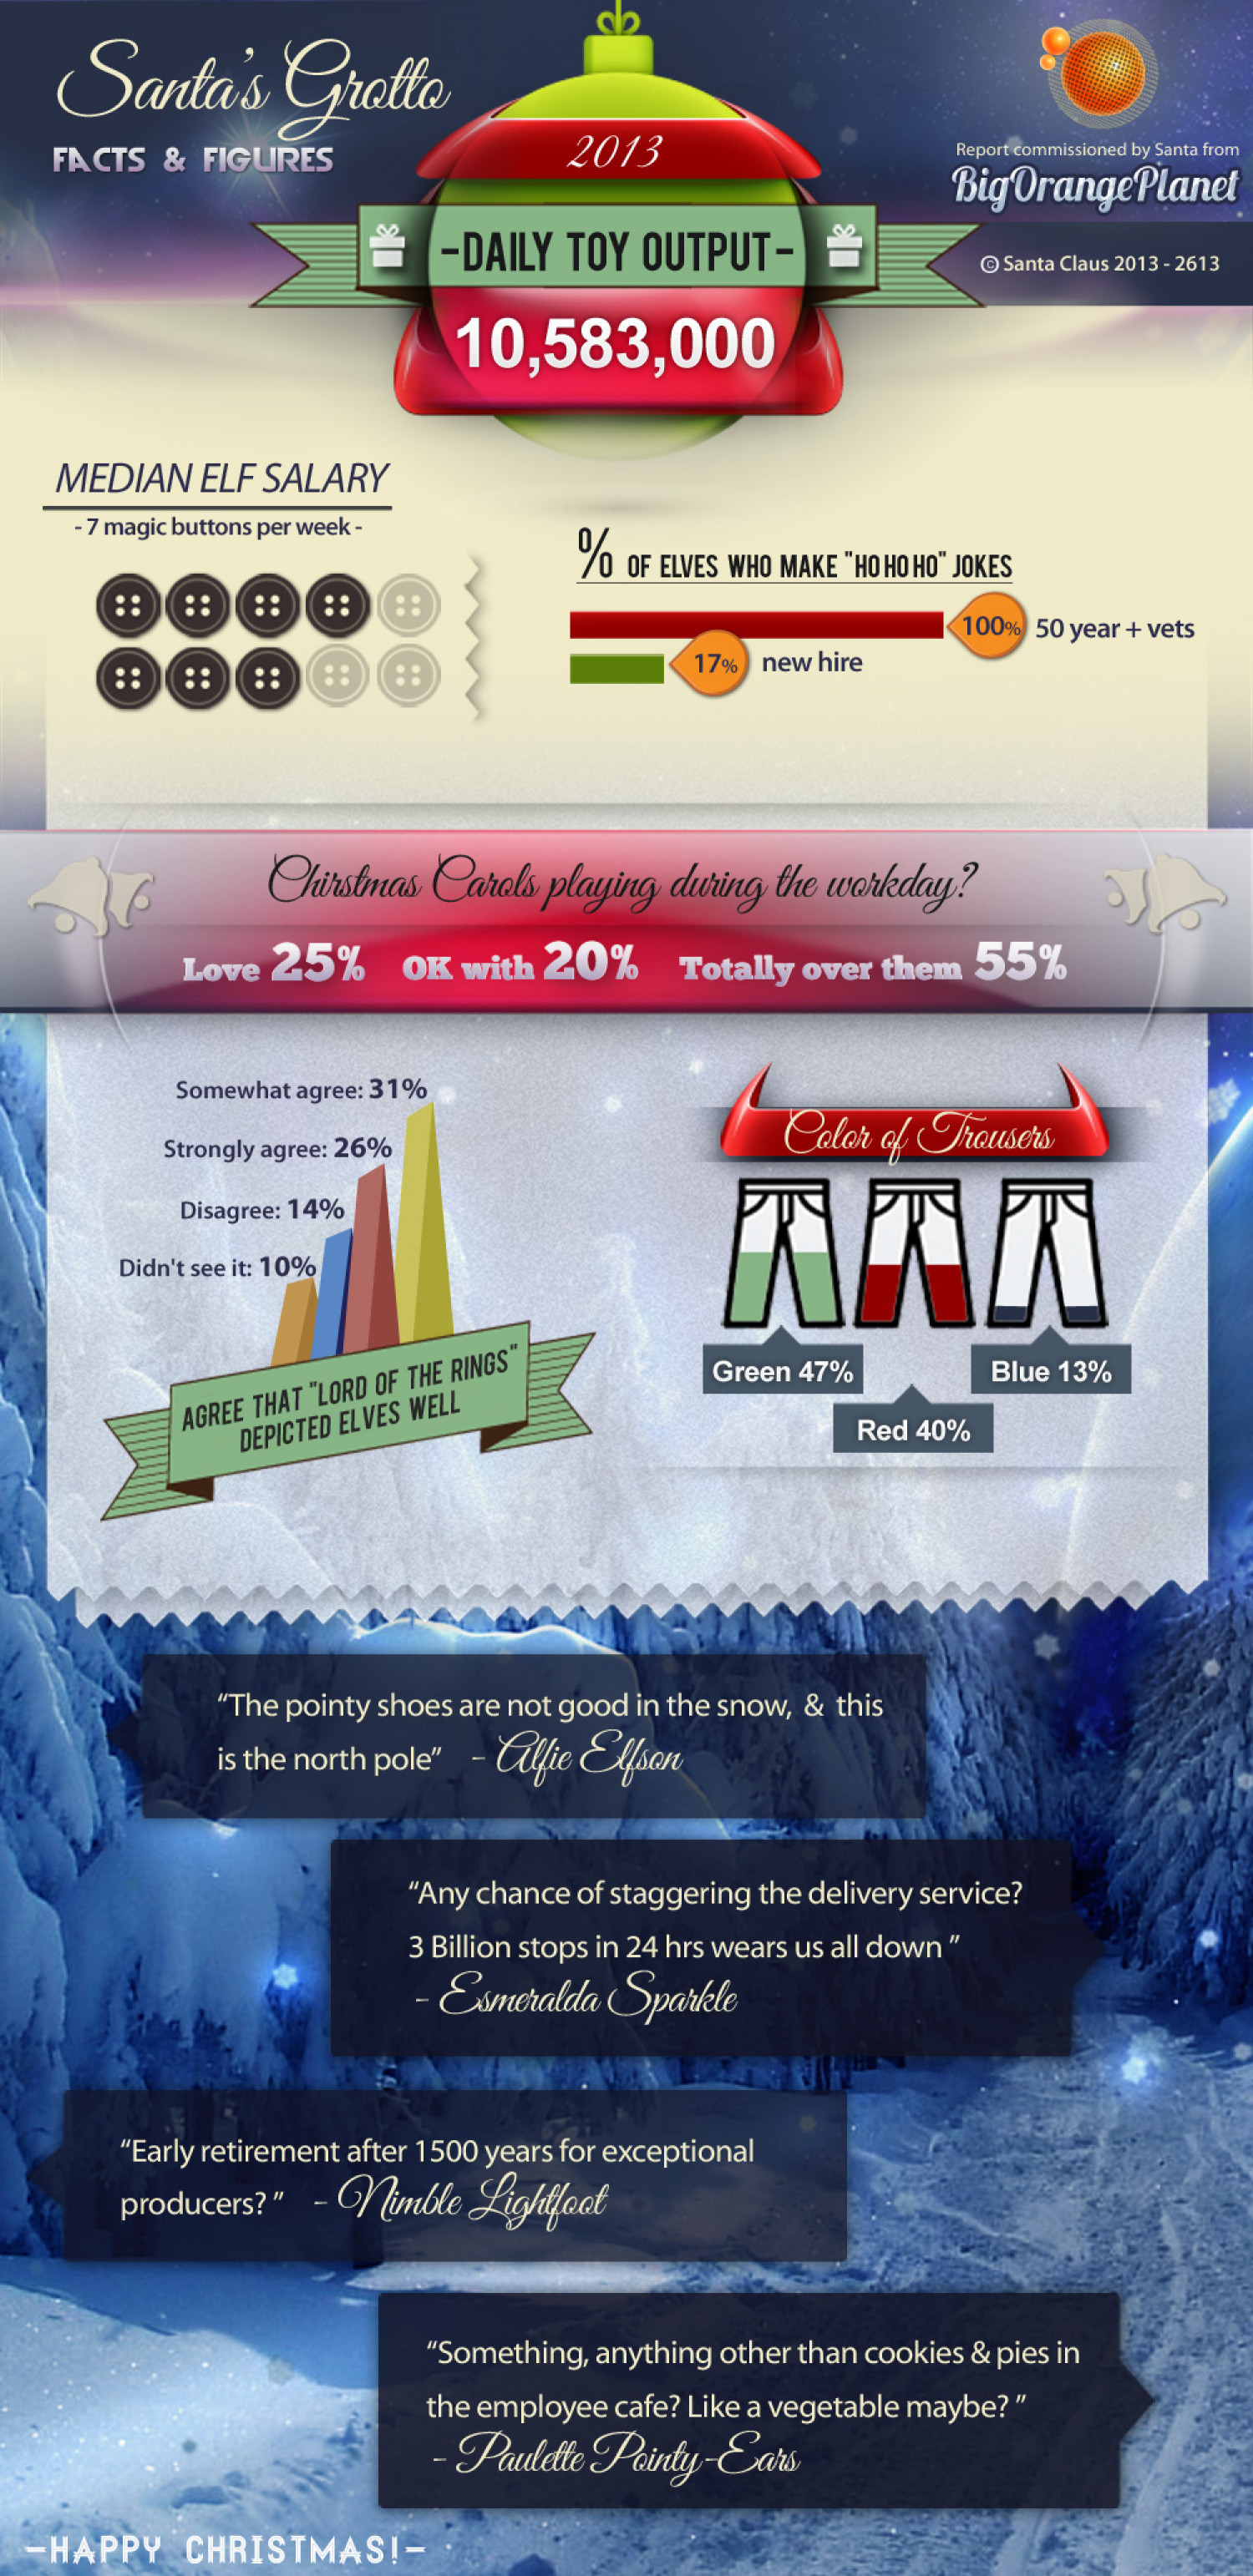 Santa's Grotto Facts and Figures Infographic